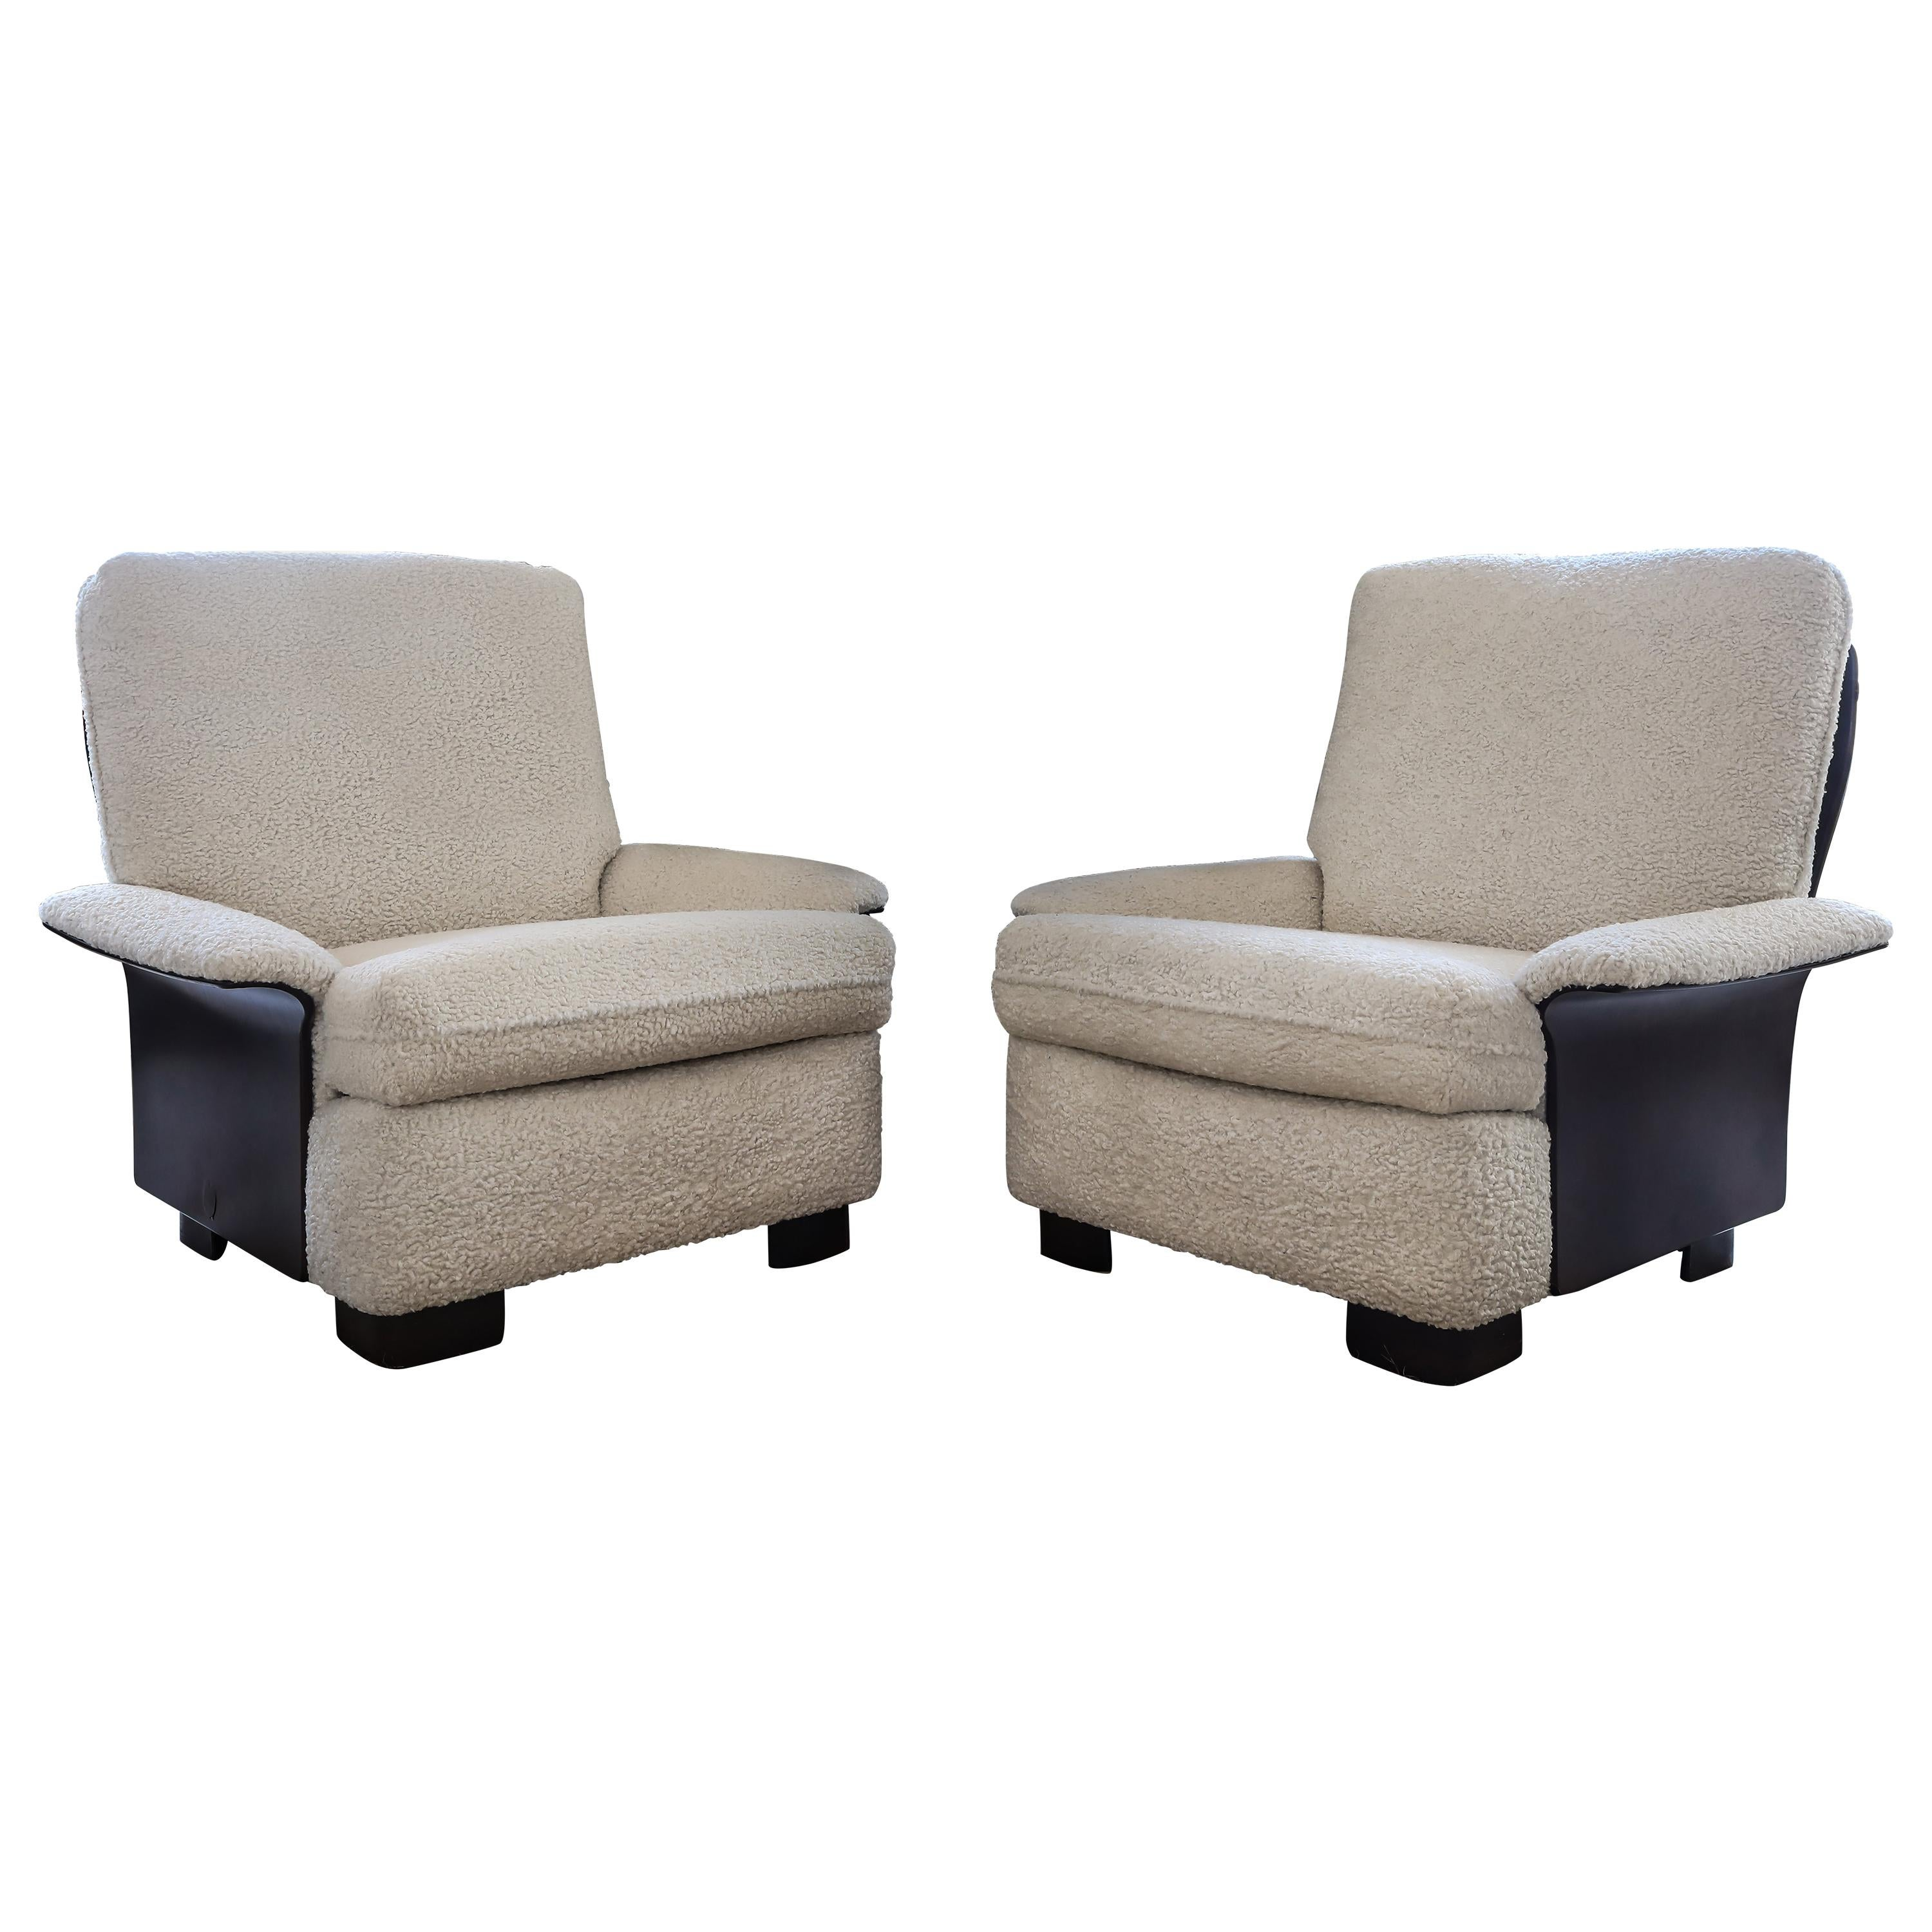 Pair of Rare Italian Lounge Chairs by Gianfranco Frattini for Cassina